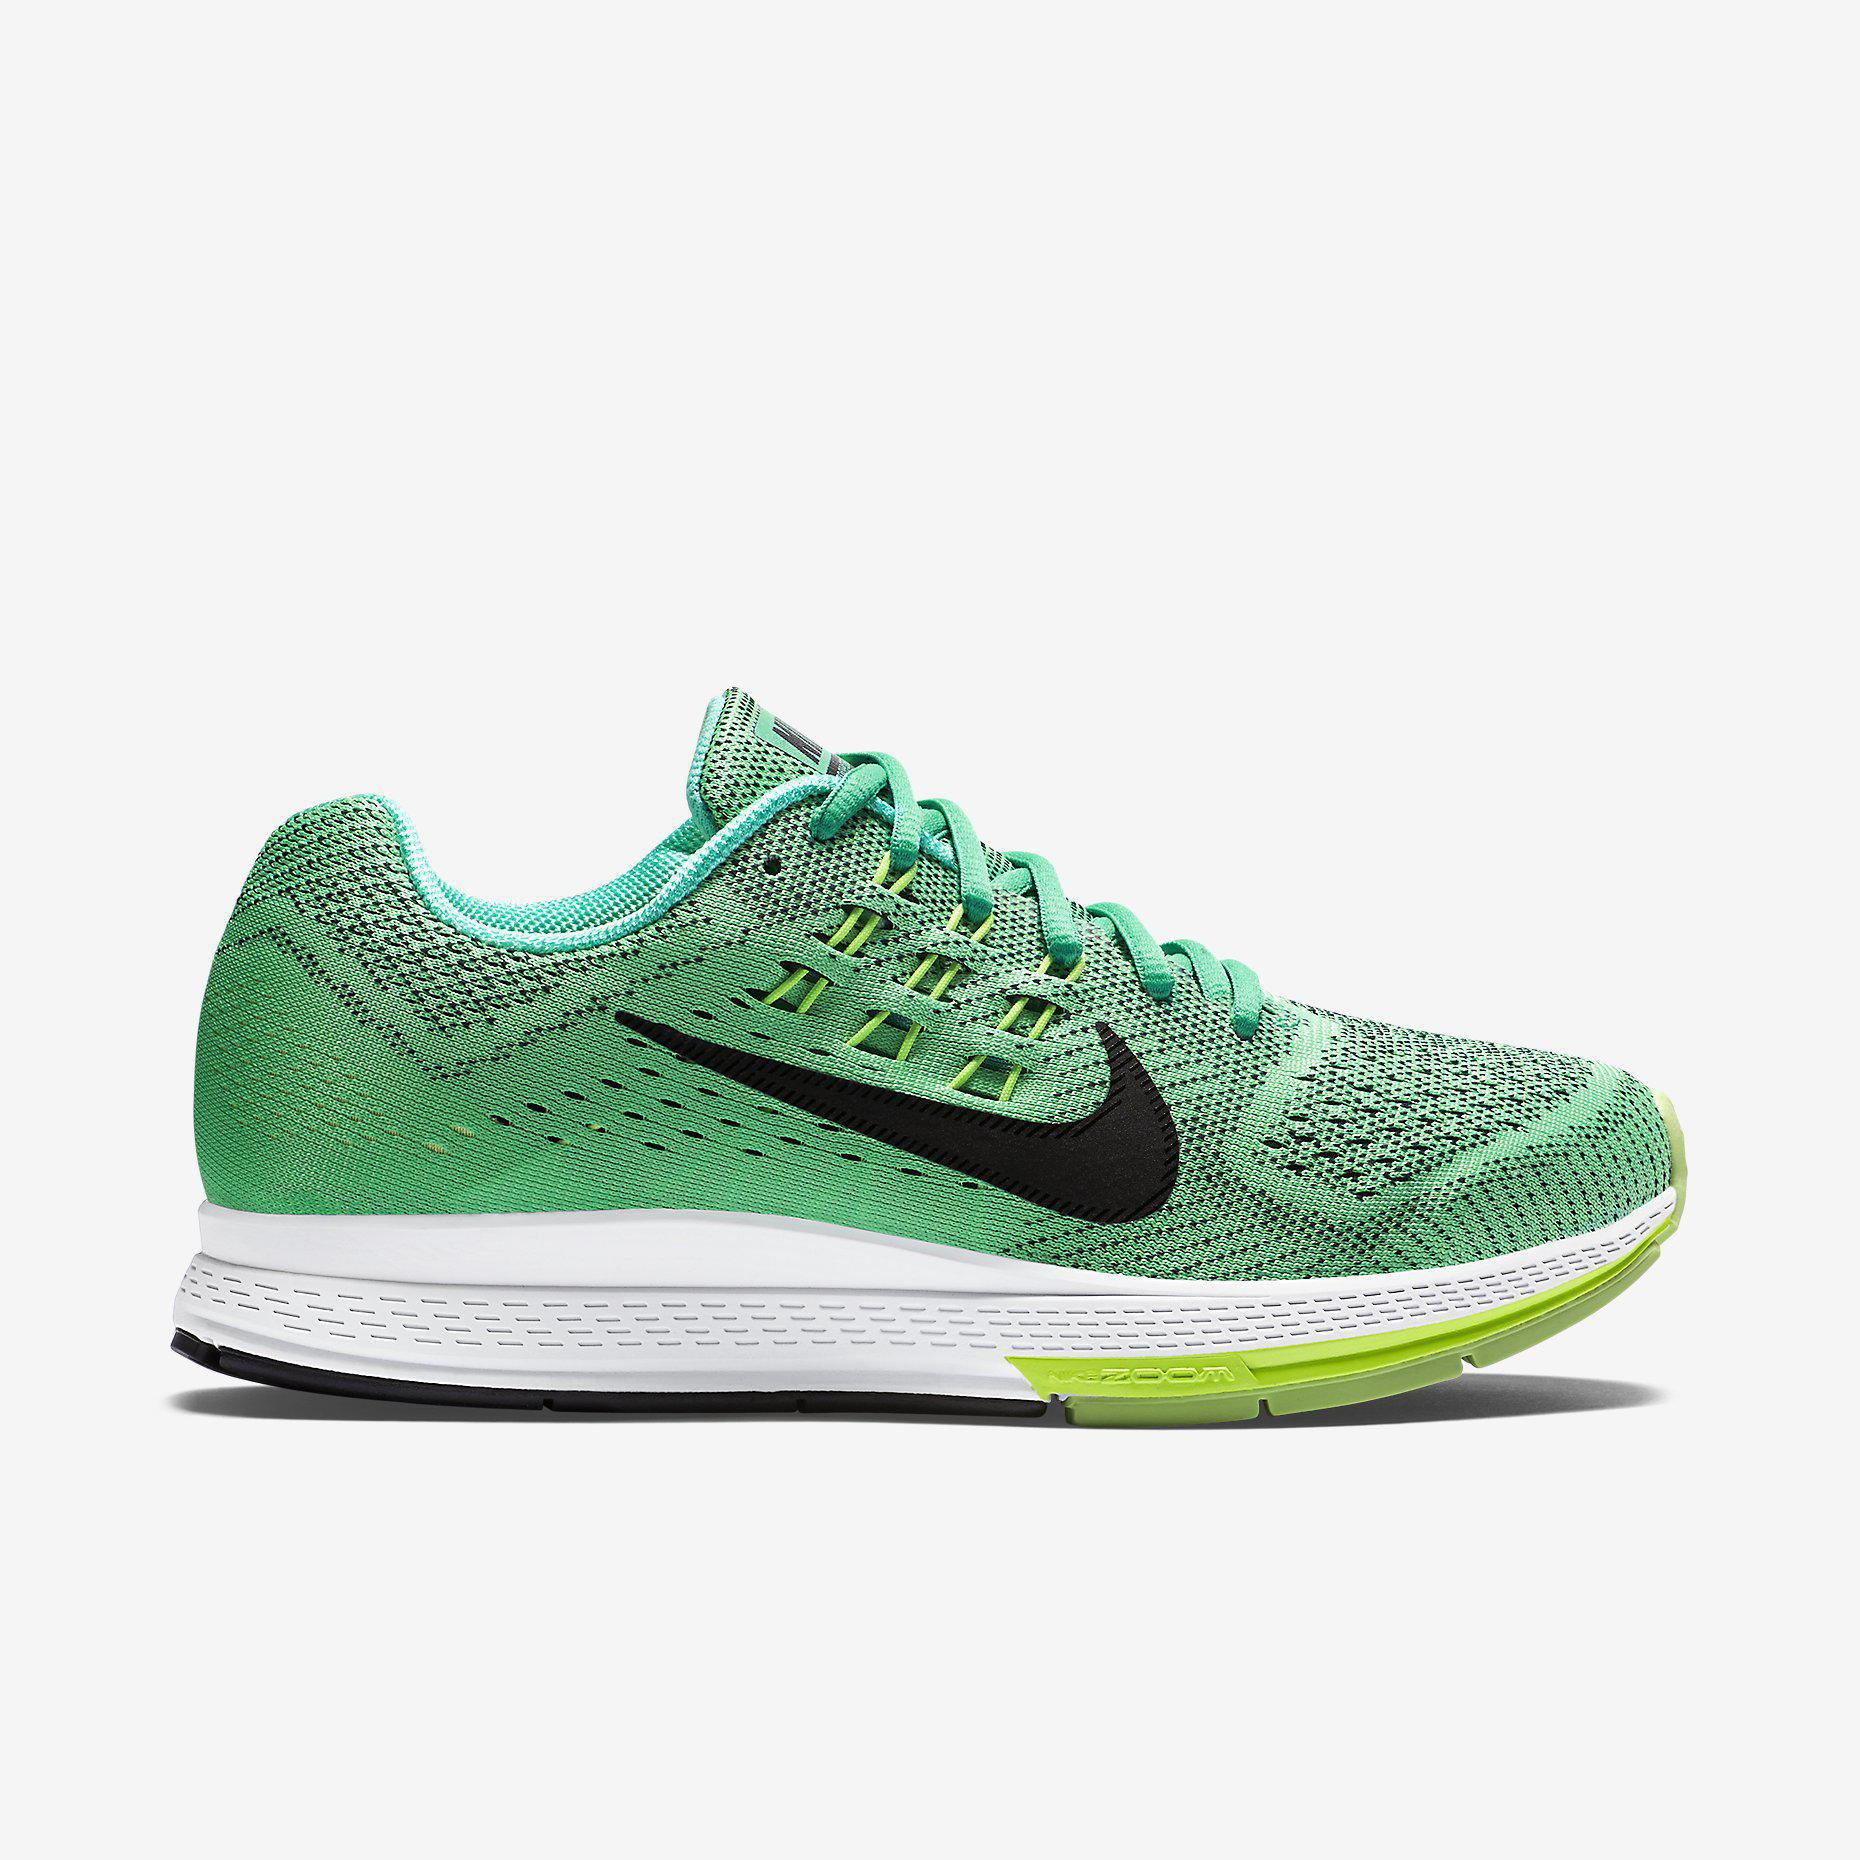 wholesale dealer fda78 8a277 Nike Womens Air Zoom Structure 18 Running Shoes - Menta Green -  Tennisnuts.com